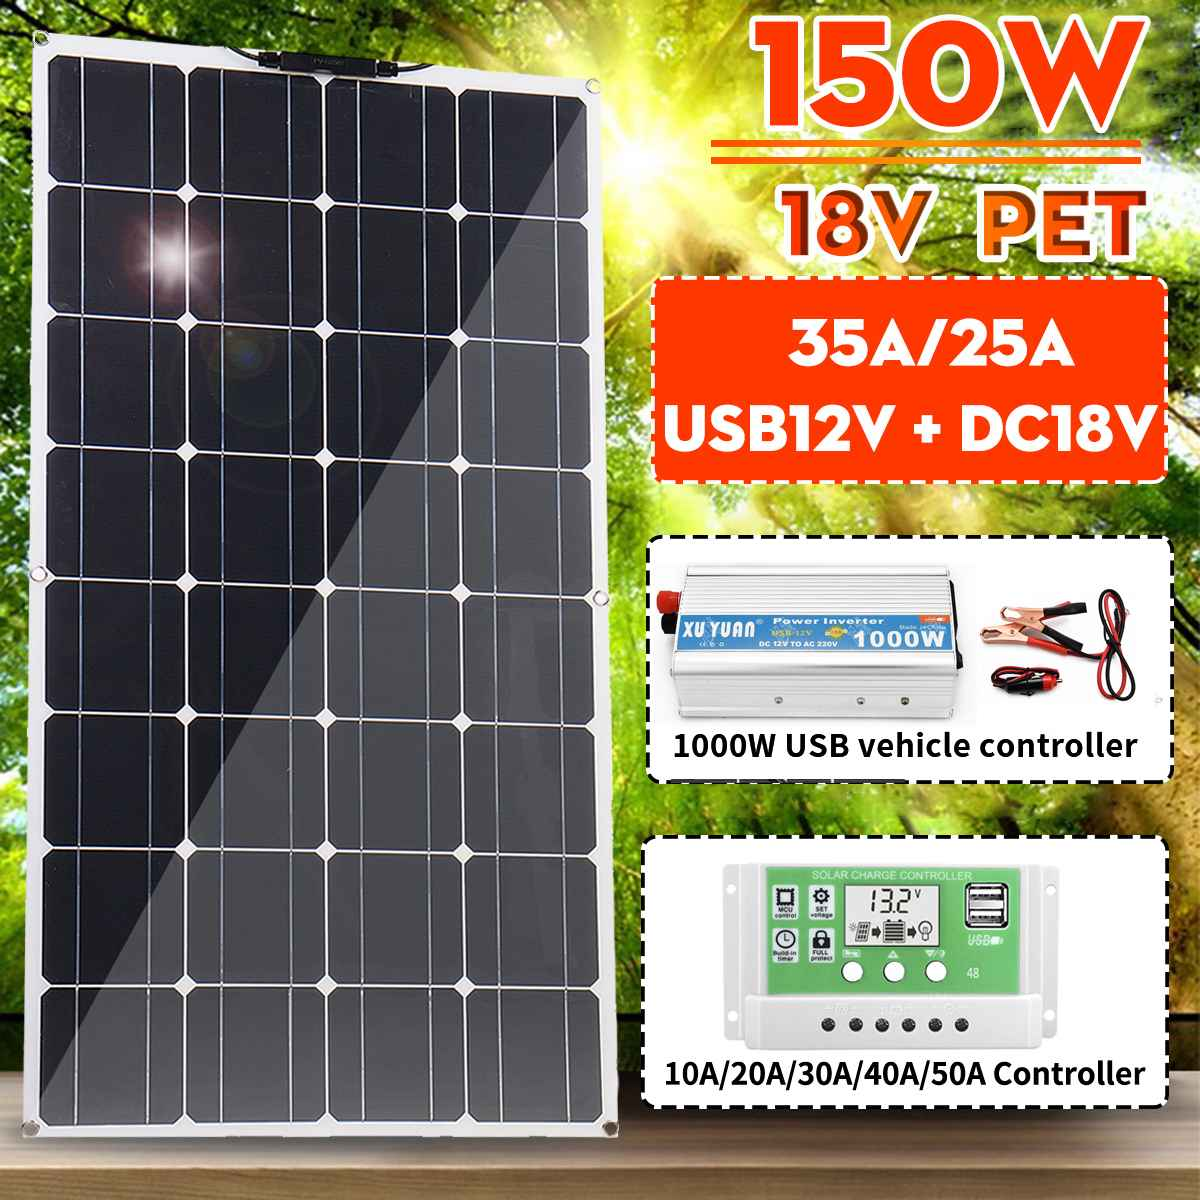 105cm150/300W Monocrystalline Solar Panel Dual USB With 30-50A Controller 1000W Power Inverter Vehicle RV Marine Battery Charger